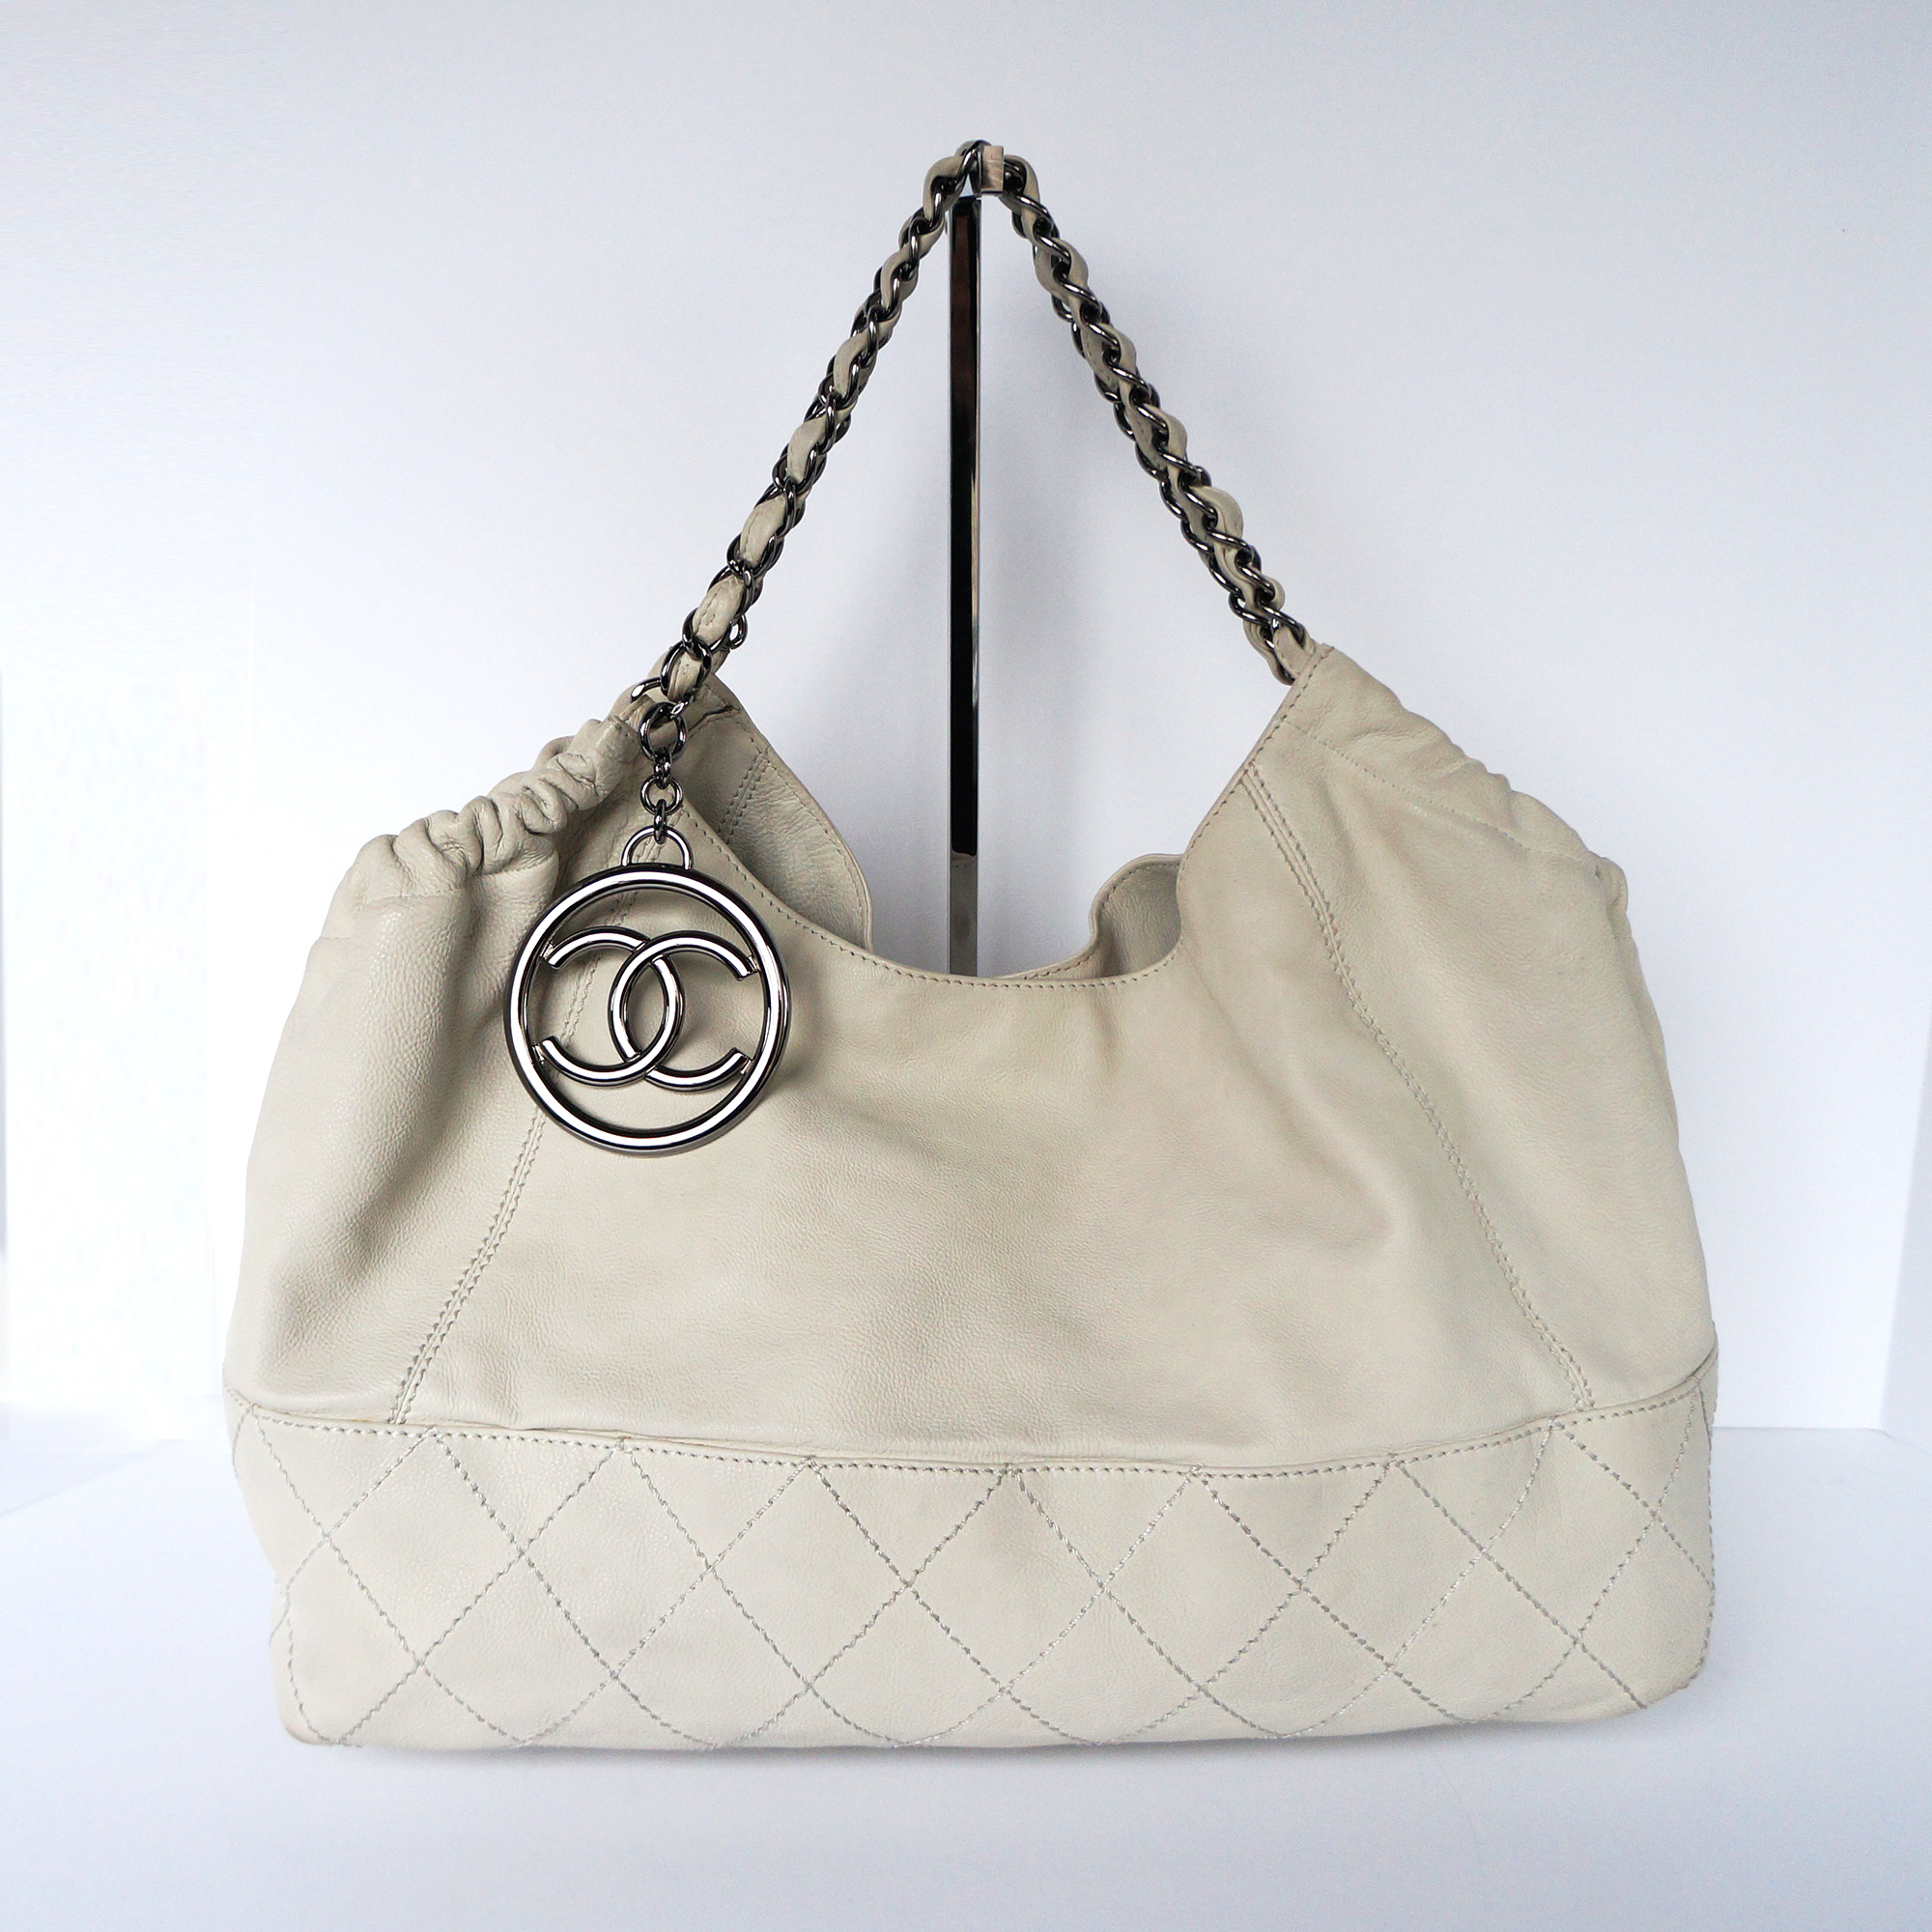 3906e3980 Chanel Iconic Baby CoCo Cabas Tote Bag White Calfskin Leather     My ...